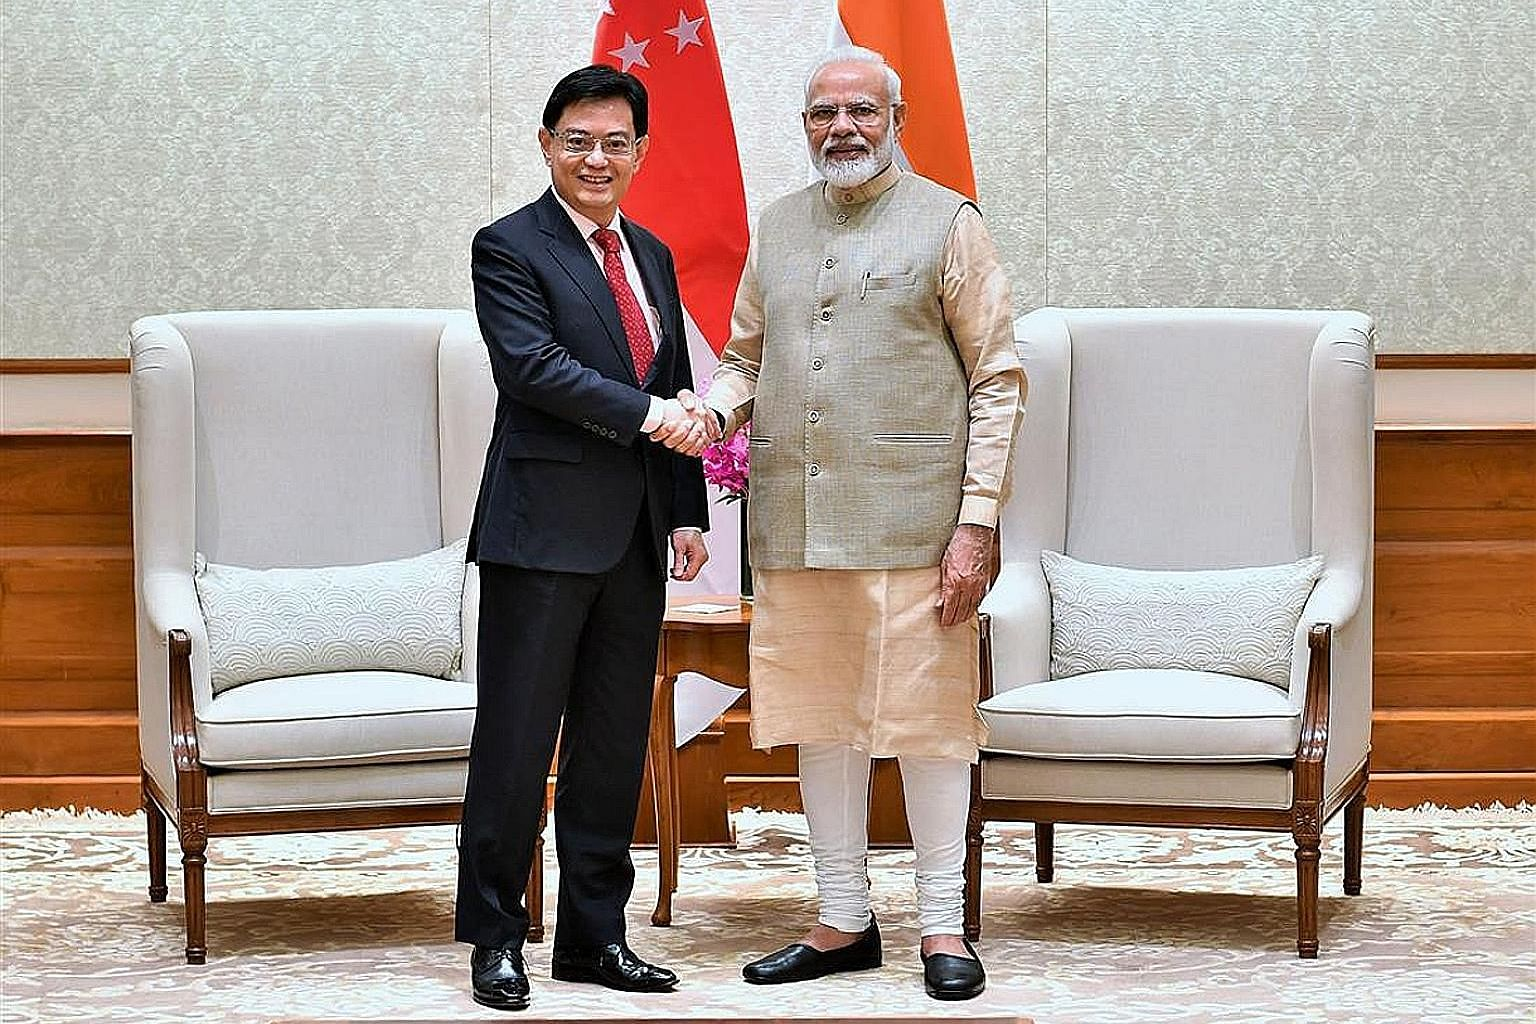 Deputy Prime Minister Heng Swee Keat meeting Indian PM Narendra Modi (left) and Bangladesh PM Sheikh Hasina in New Delhi yesterday. PHOTOS: PRESS INFORMATION BUREAU, GOVERNMENT OF INDIA; MINISTRY OF COMMUNICATIONS AND INFORMATION